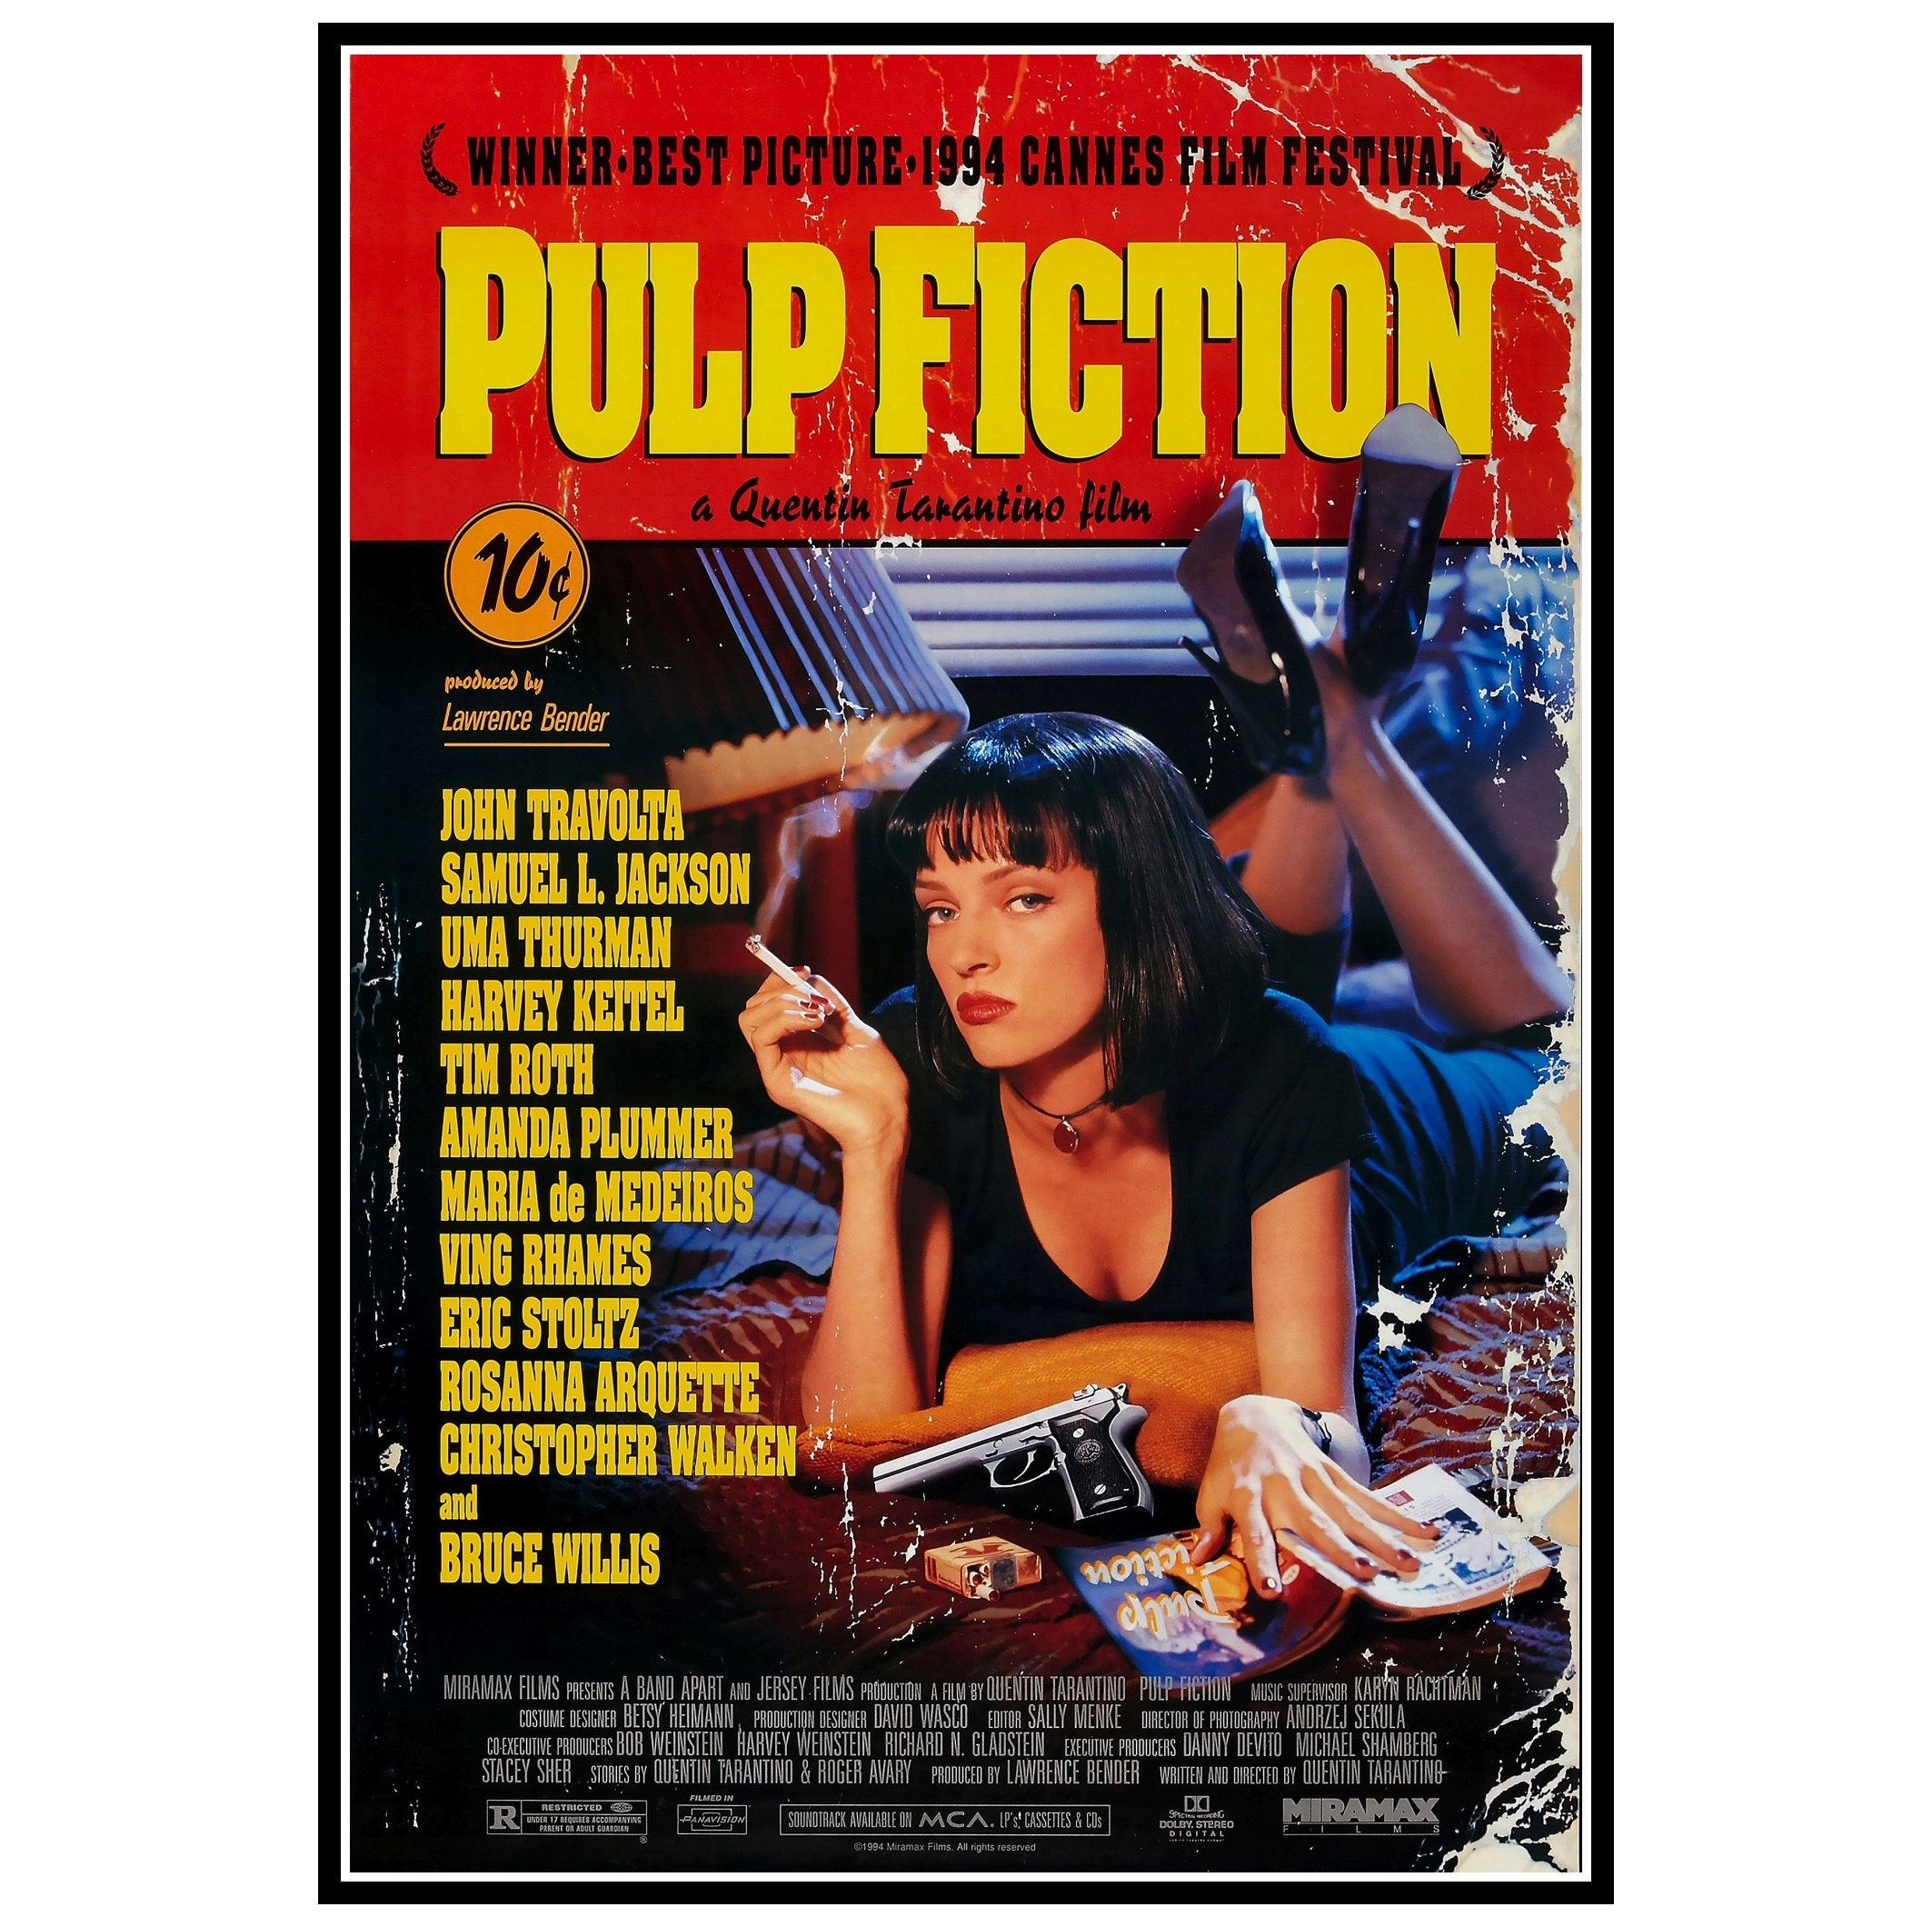 Pulp Fiction Movie Poster Prints and Canvas Prints